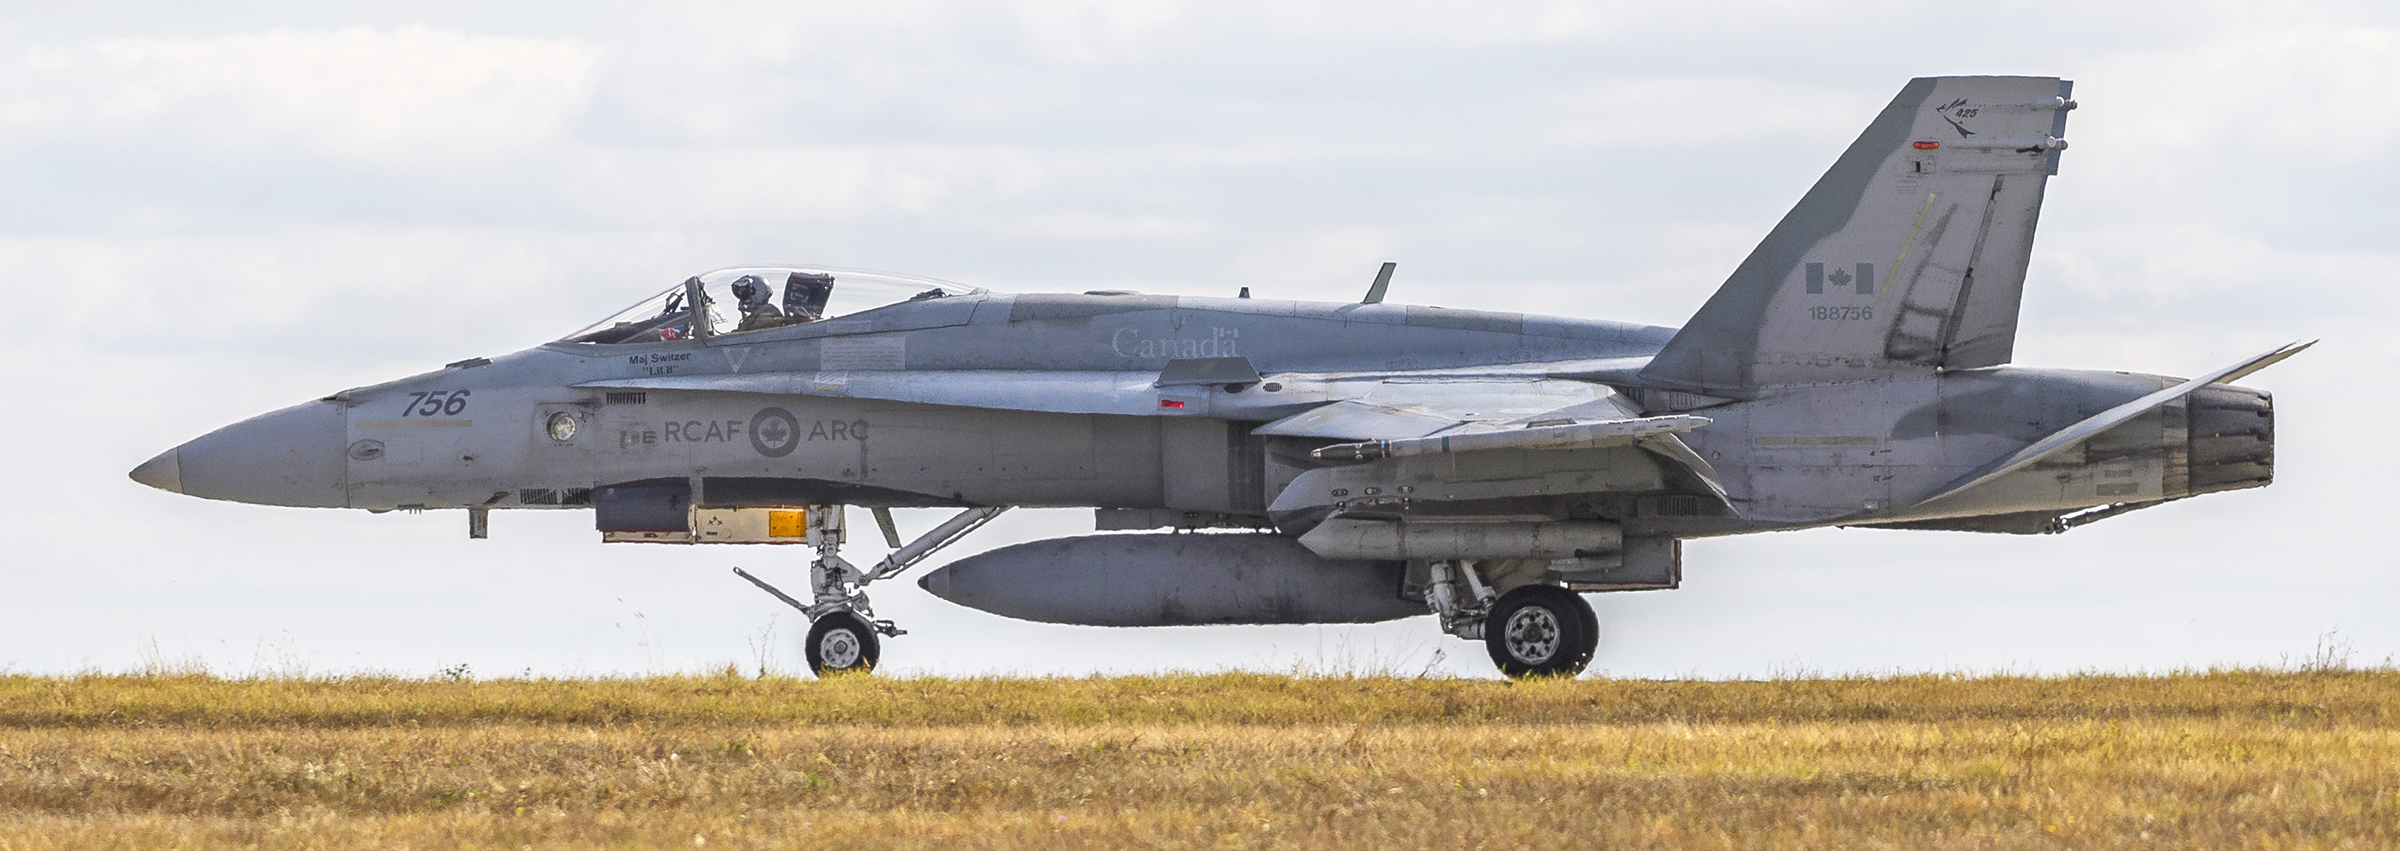 This CF-188 Hornet displays its registration or tail number—consisting of three digits (188) representing the type of aircraft (Hornet) plus three digits (756) identifying this particular airframe—on its tail fin. The 756 is also painted on the Hornet's nose. It is taxiing on the runway at Mihail Kogalniceanu Air Base in Romania on October 6, 2018, during Operation Reassurance. PHOTO: Corporal Dominic Duchesne-Beaulieu, RP20-2018-0034-002